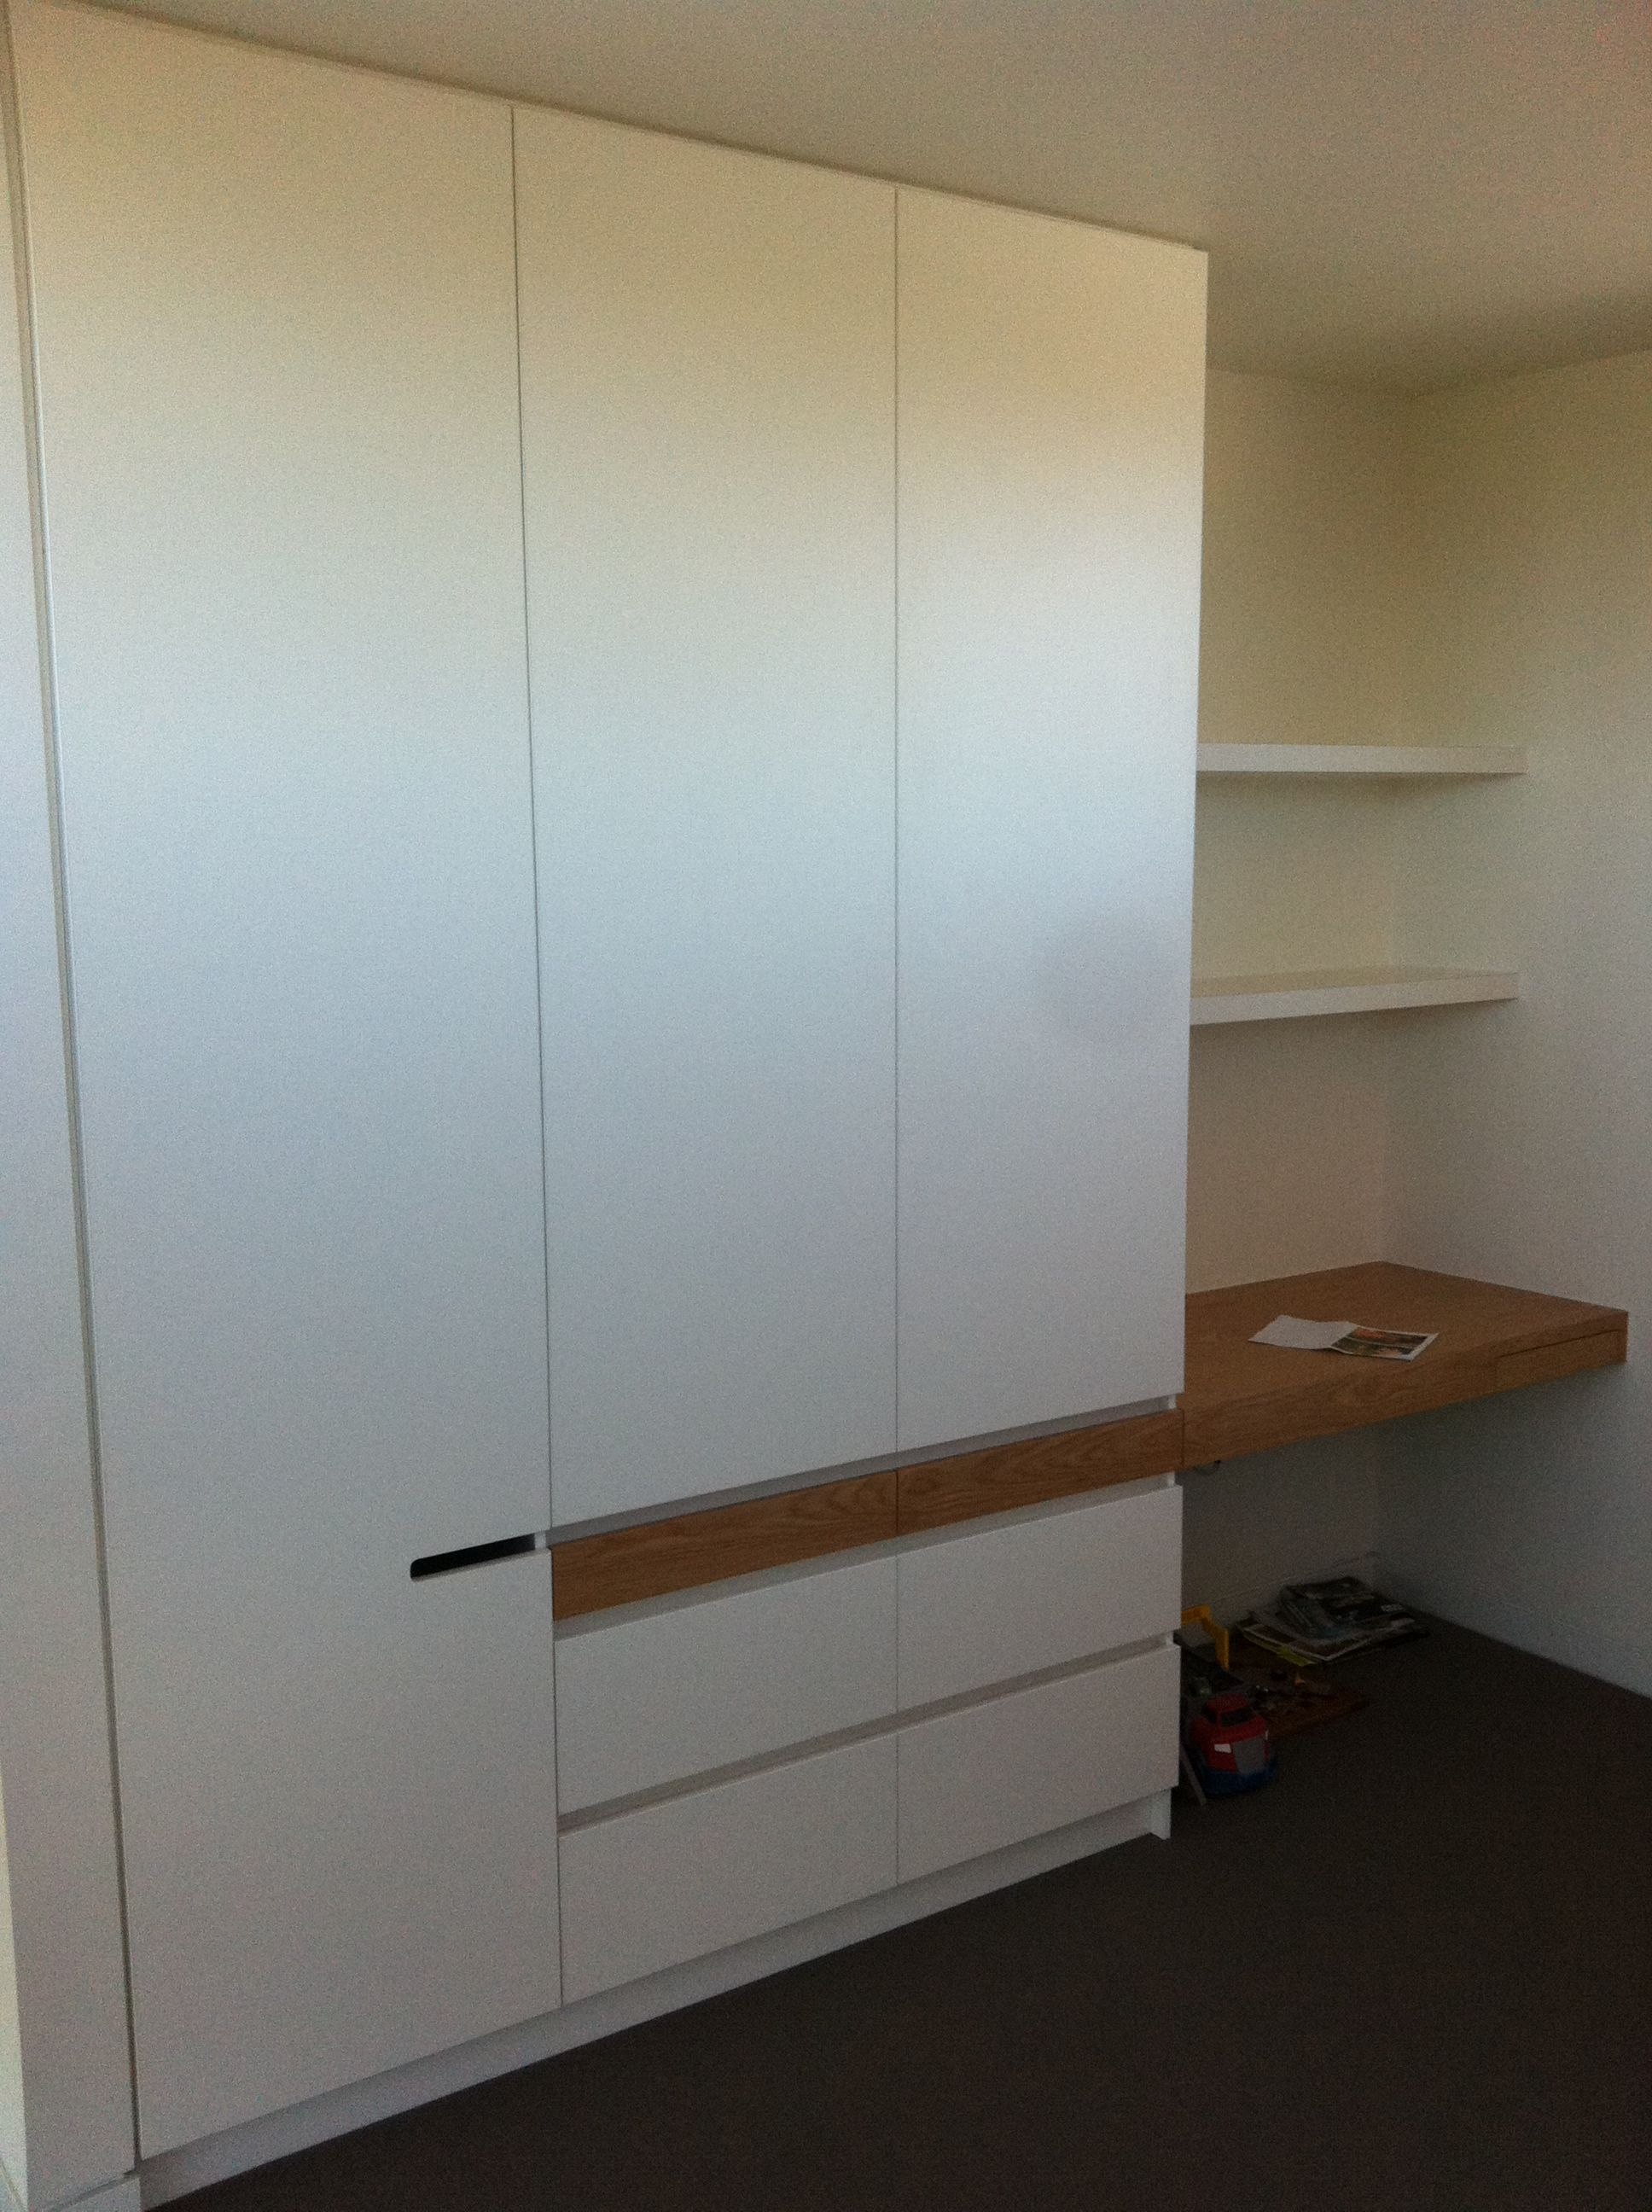 Bedroom Cupboard Study White Melamine Doors With 2Mm Pvc Edge